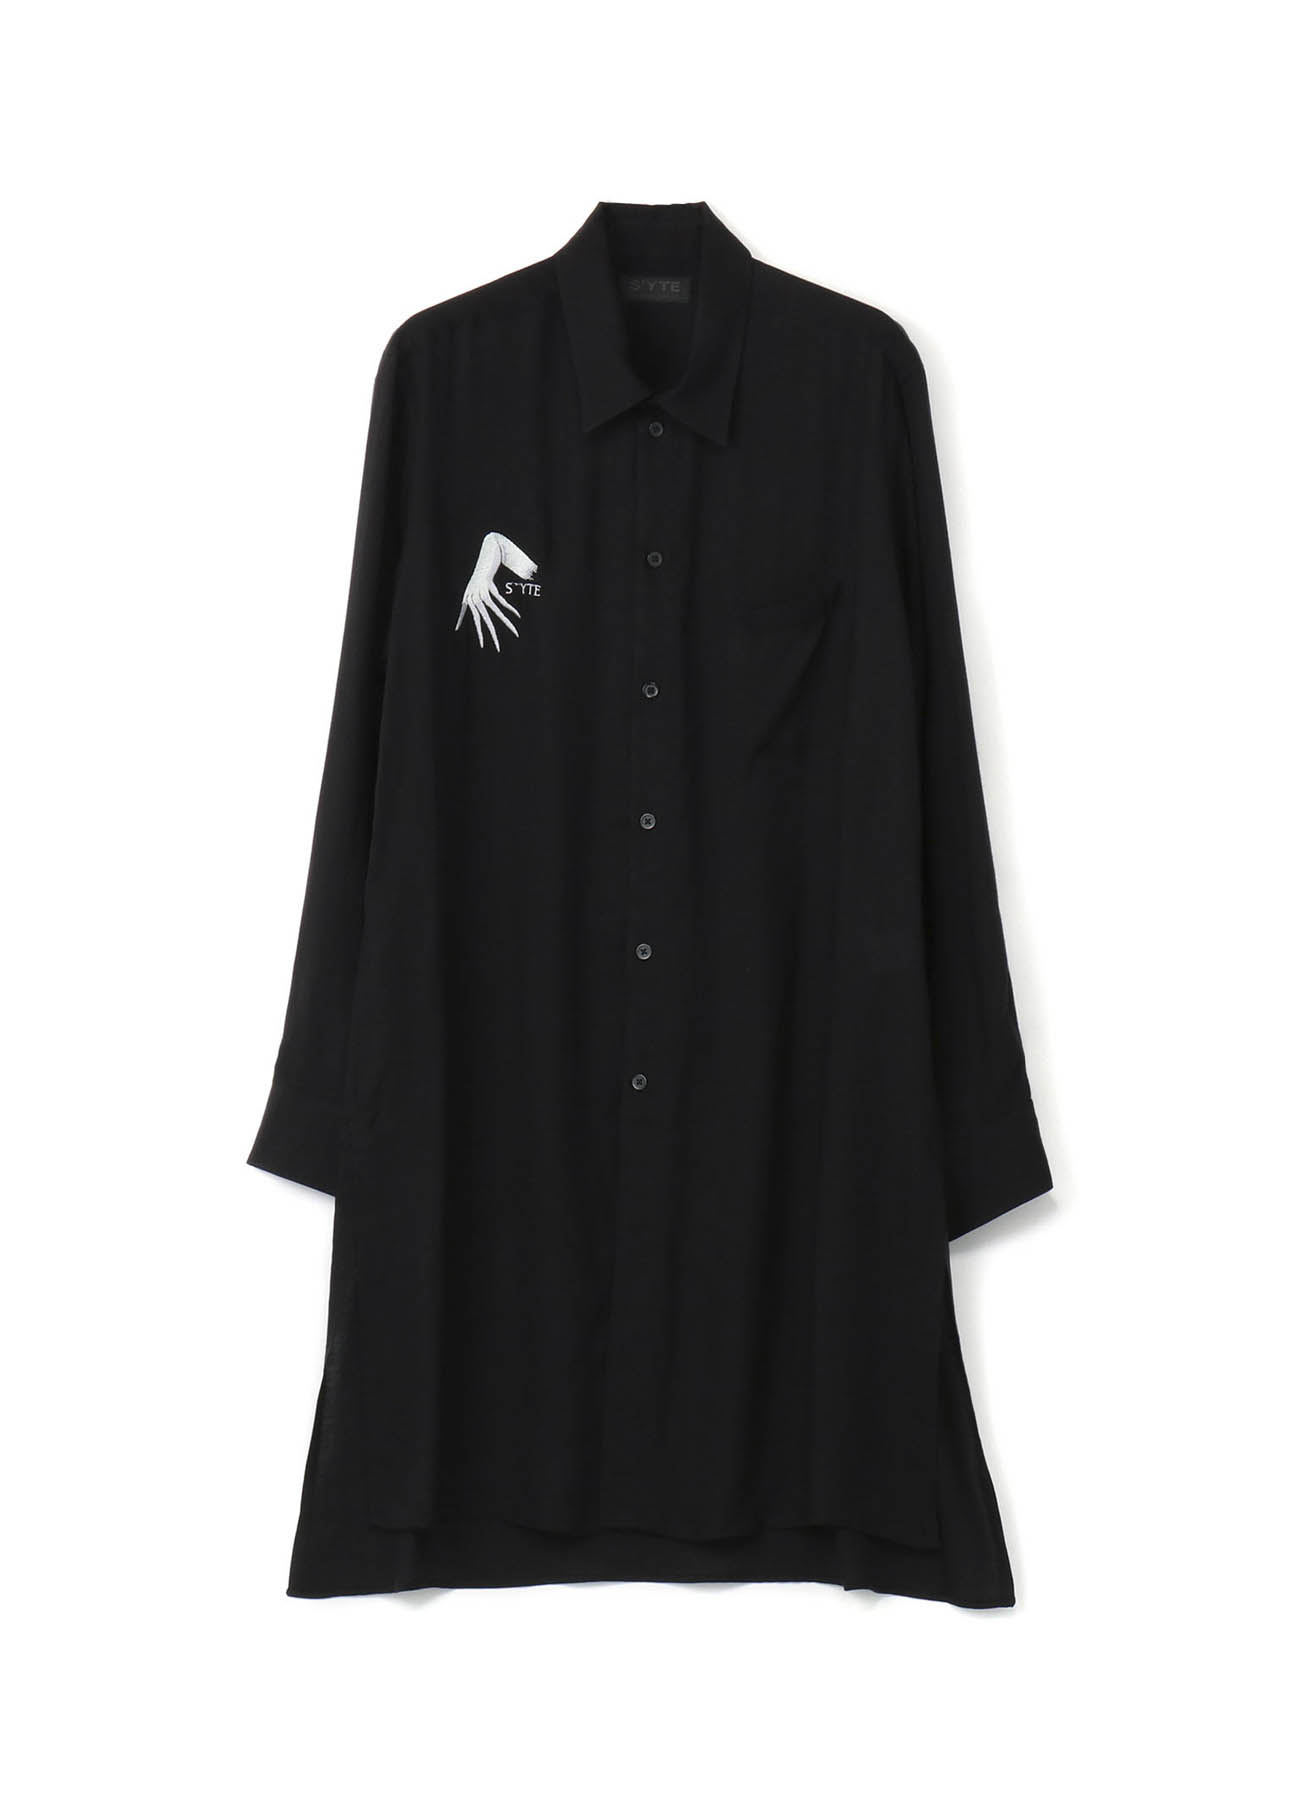 Tencel Vieira The Hands of The Ghost Embroidery Long Shirt